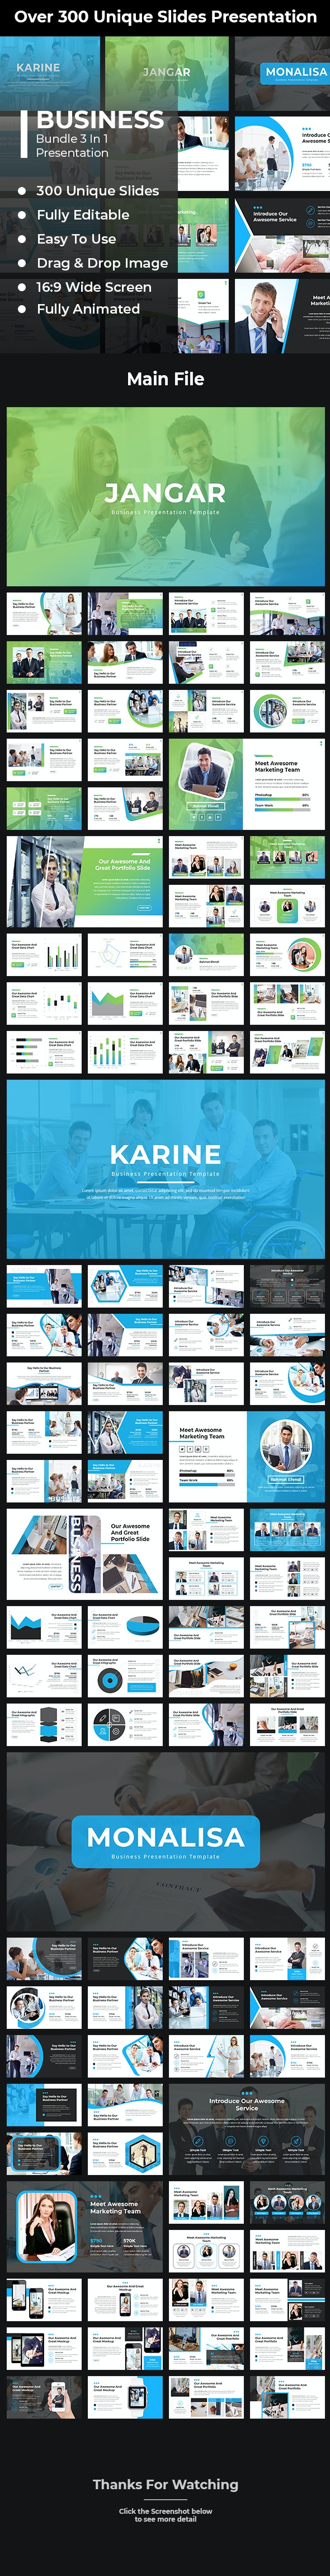 Business Bundle 3 In 1 PowerPoint Template - Business PowerPoint Templates